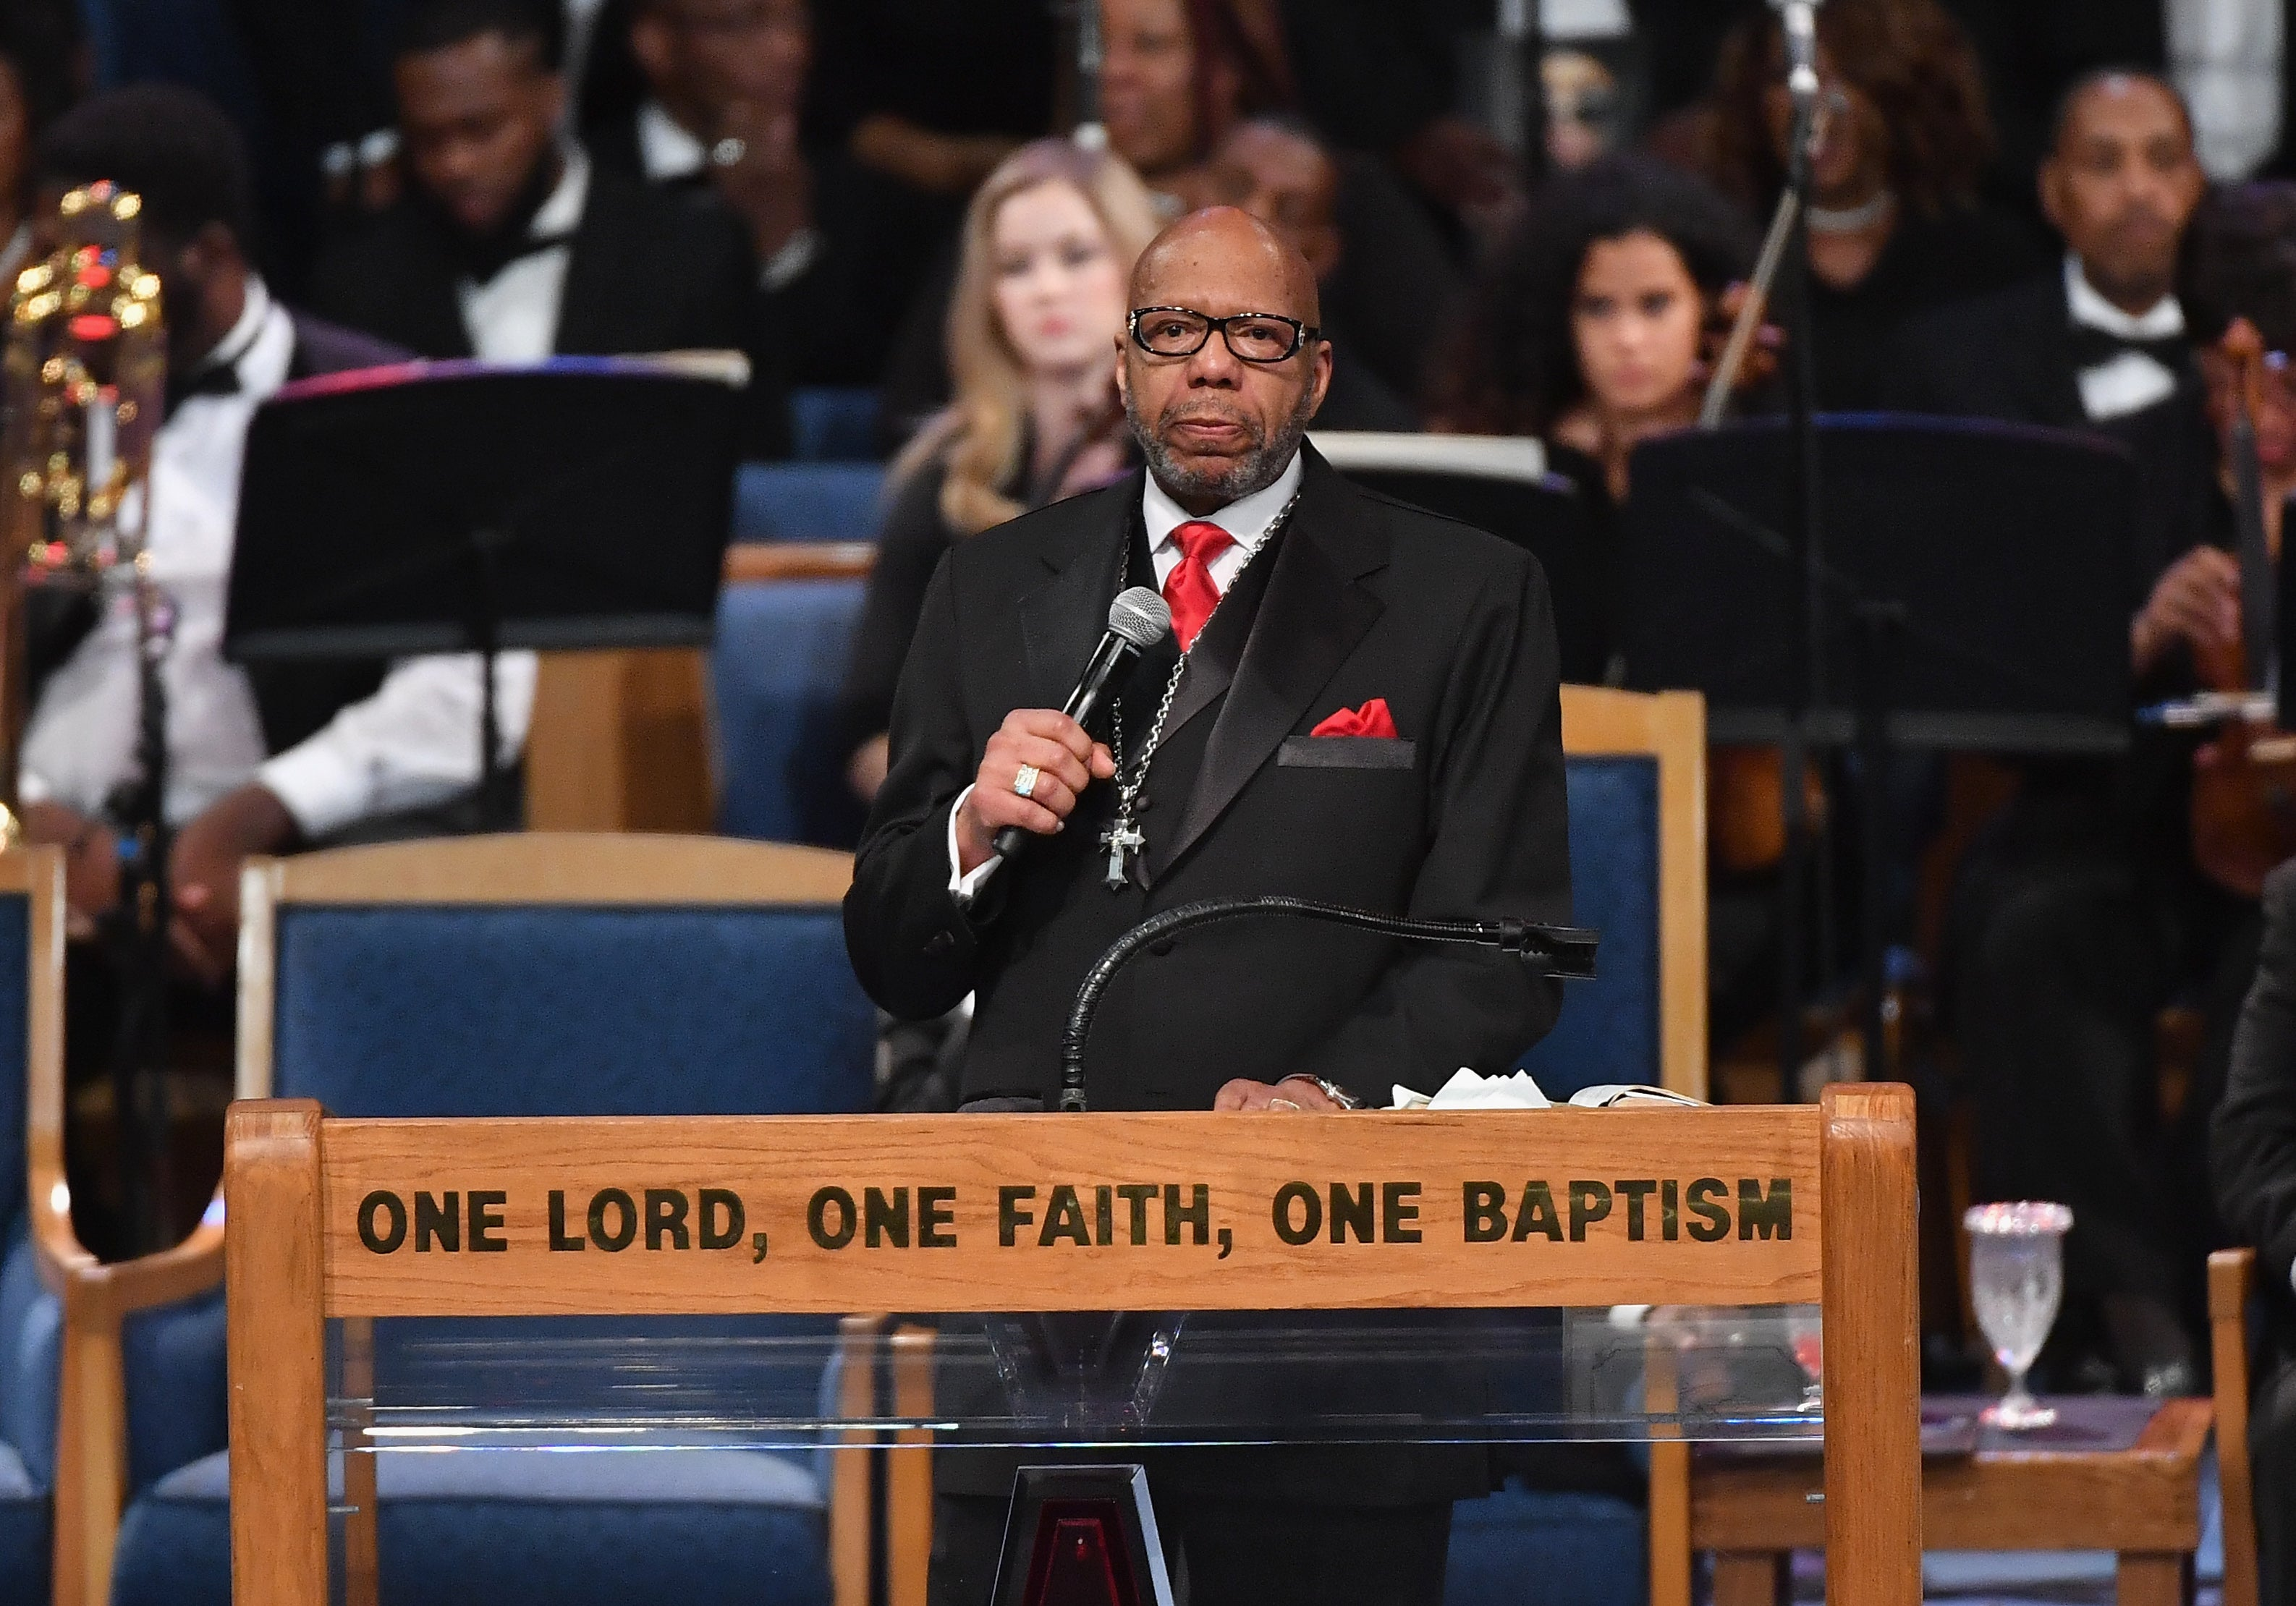 Many Were Not Happy With The Eulogy At Aretha Franklin's Funeral